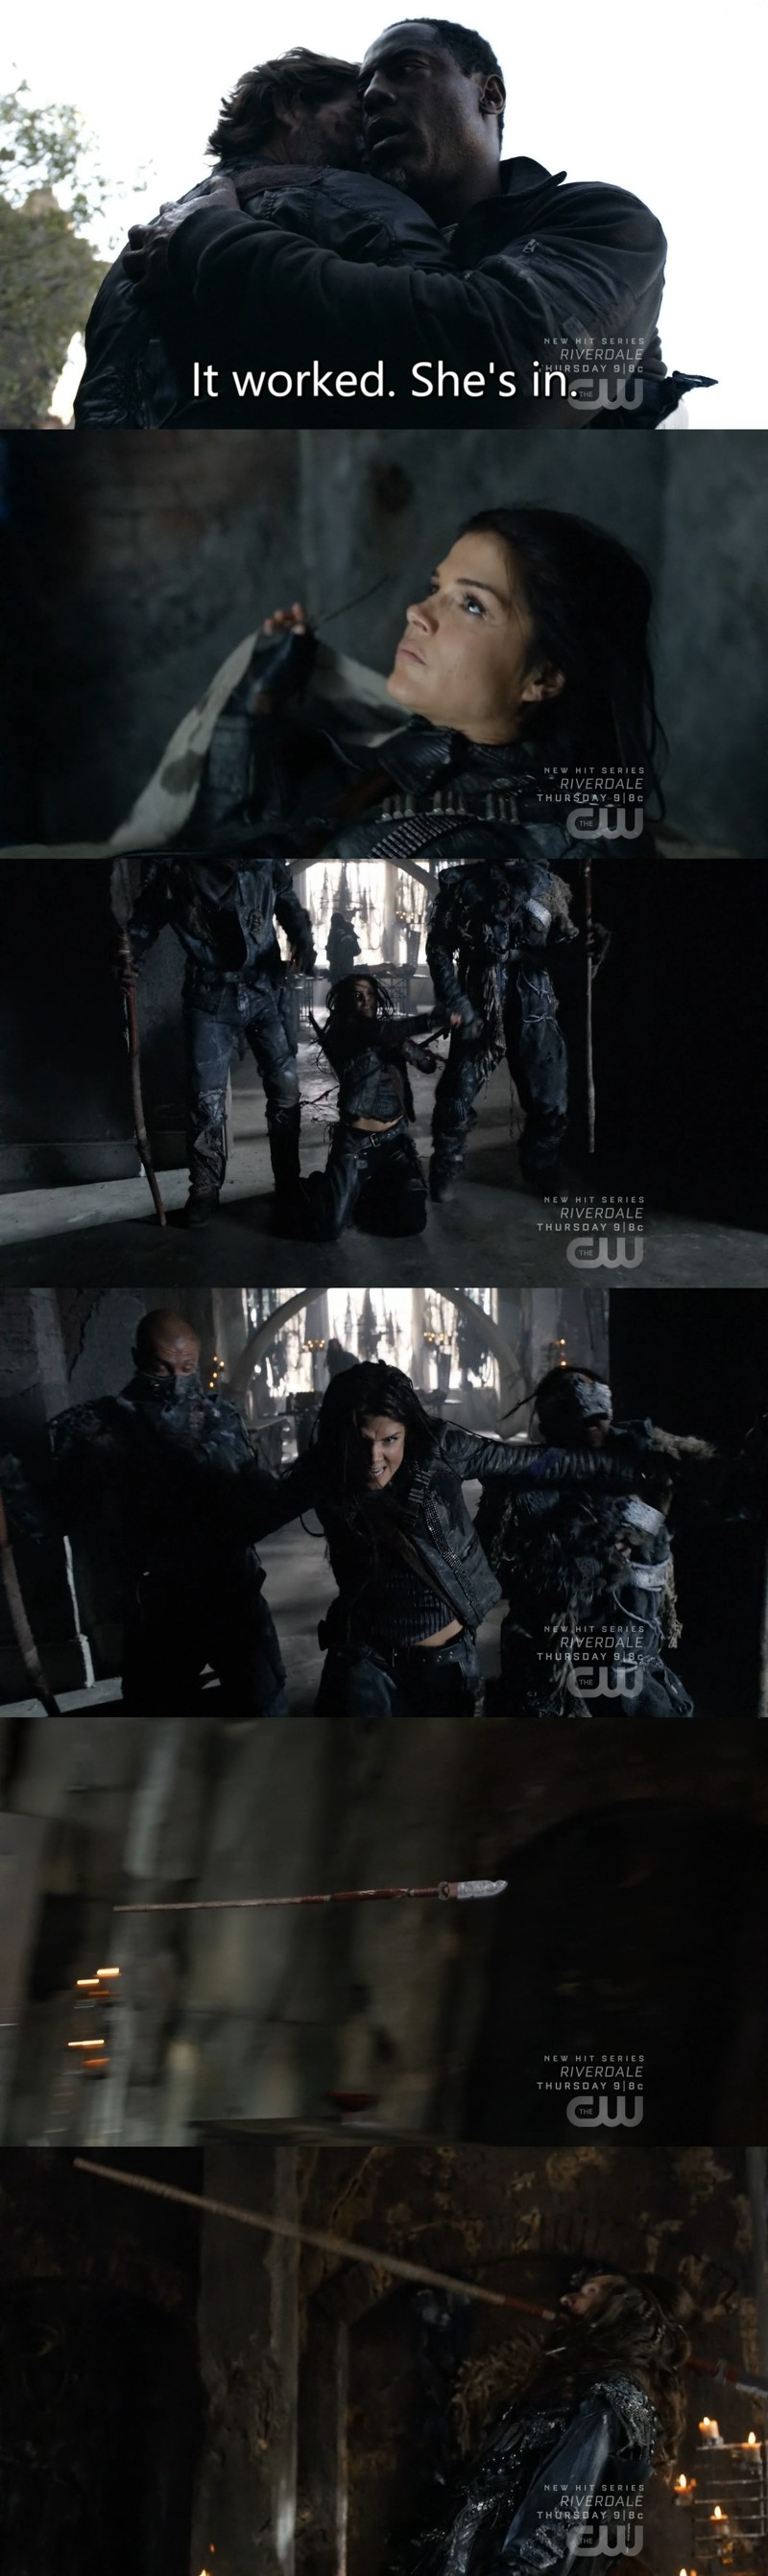 Octavia is back, bitches!